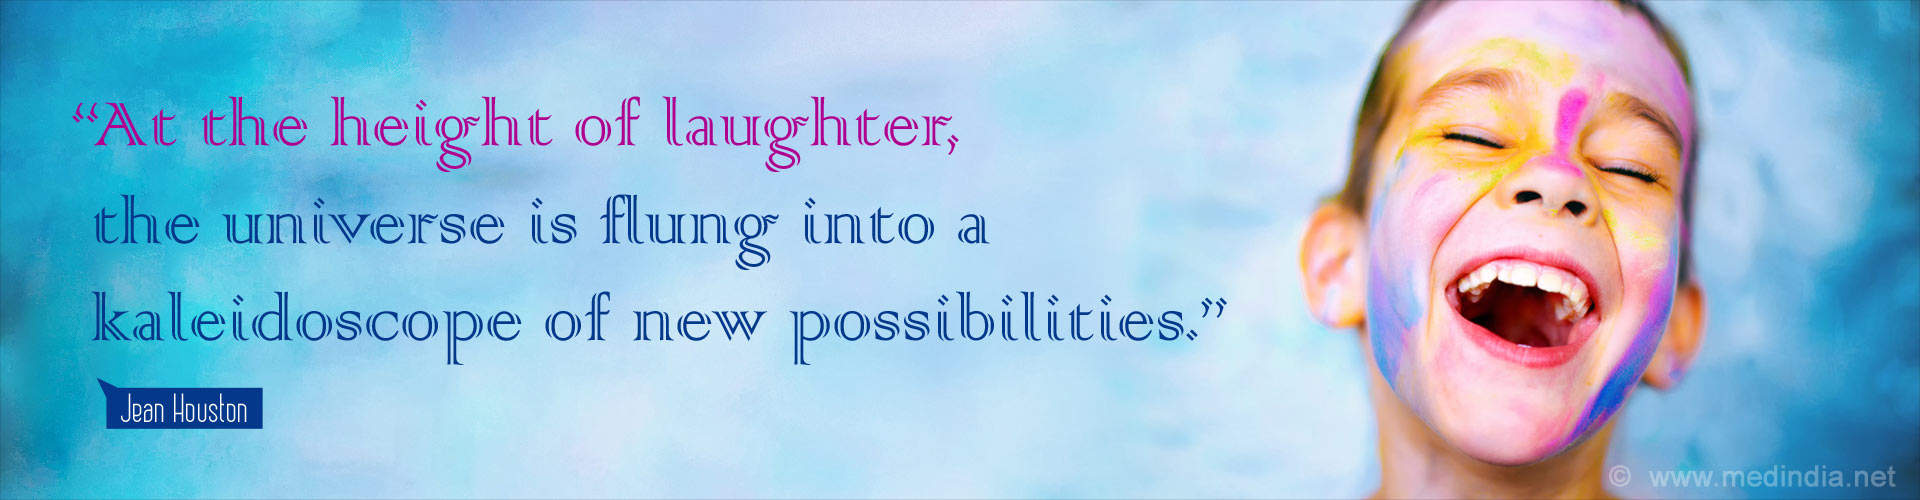 Laughter Quotation